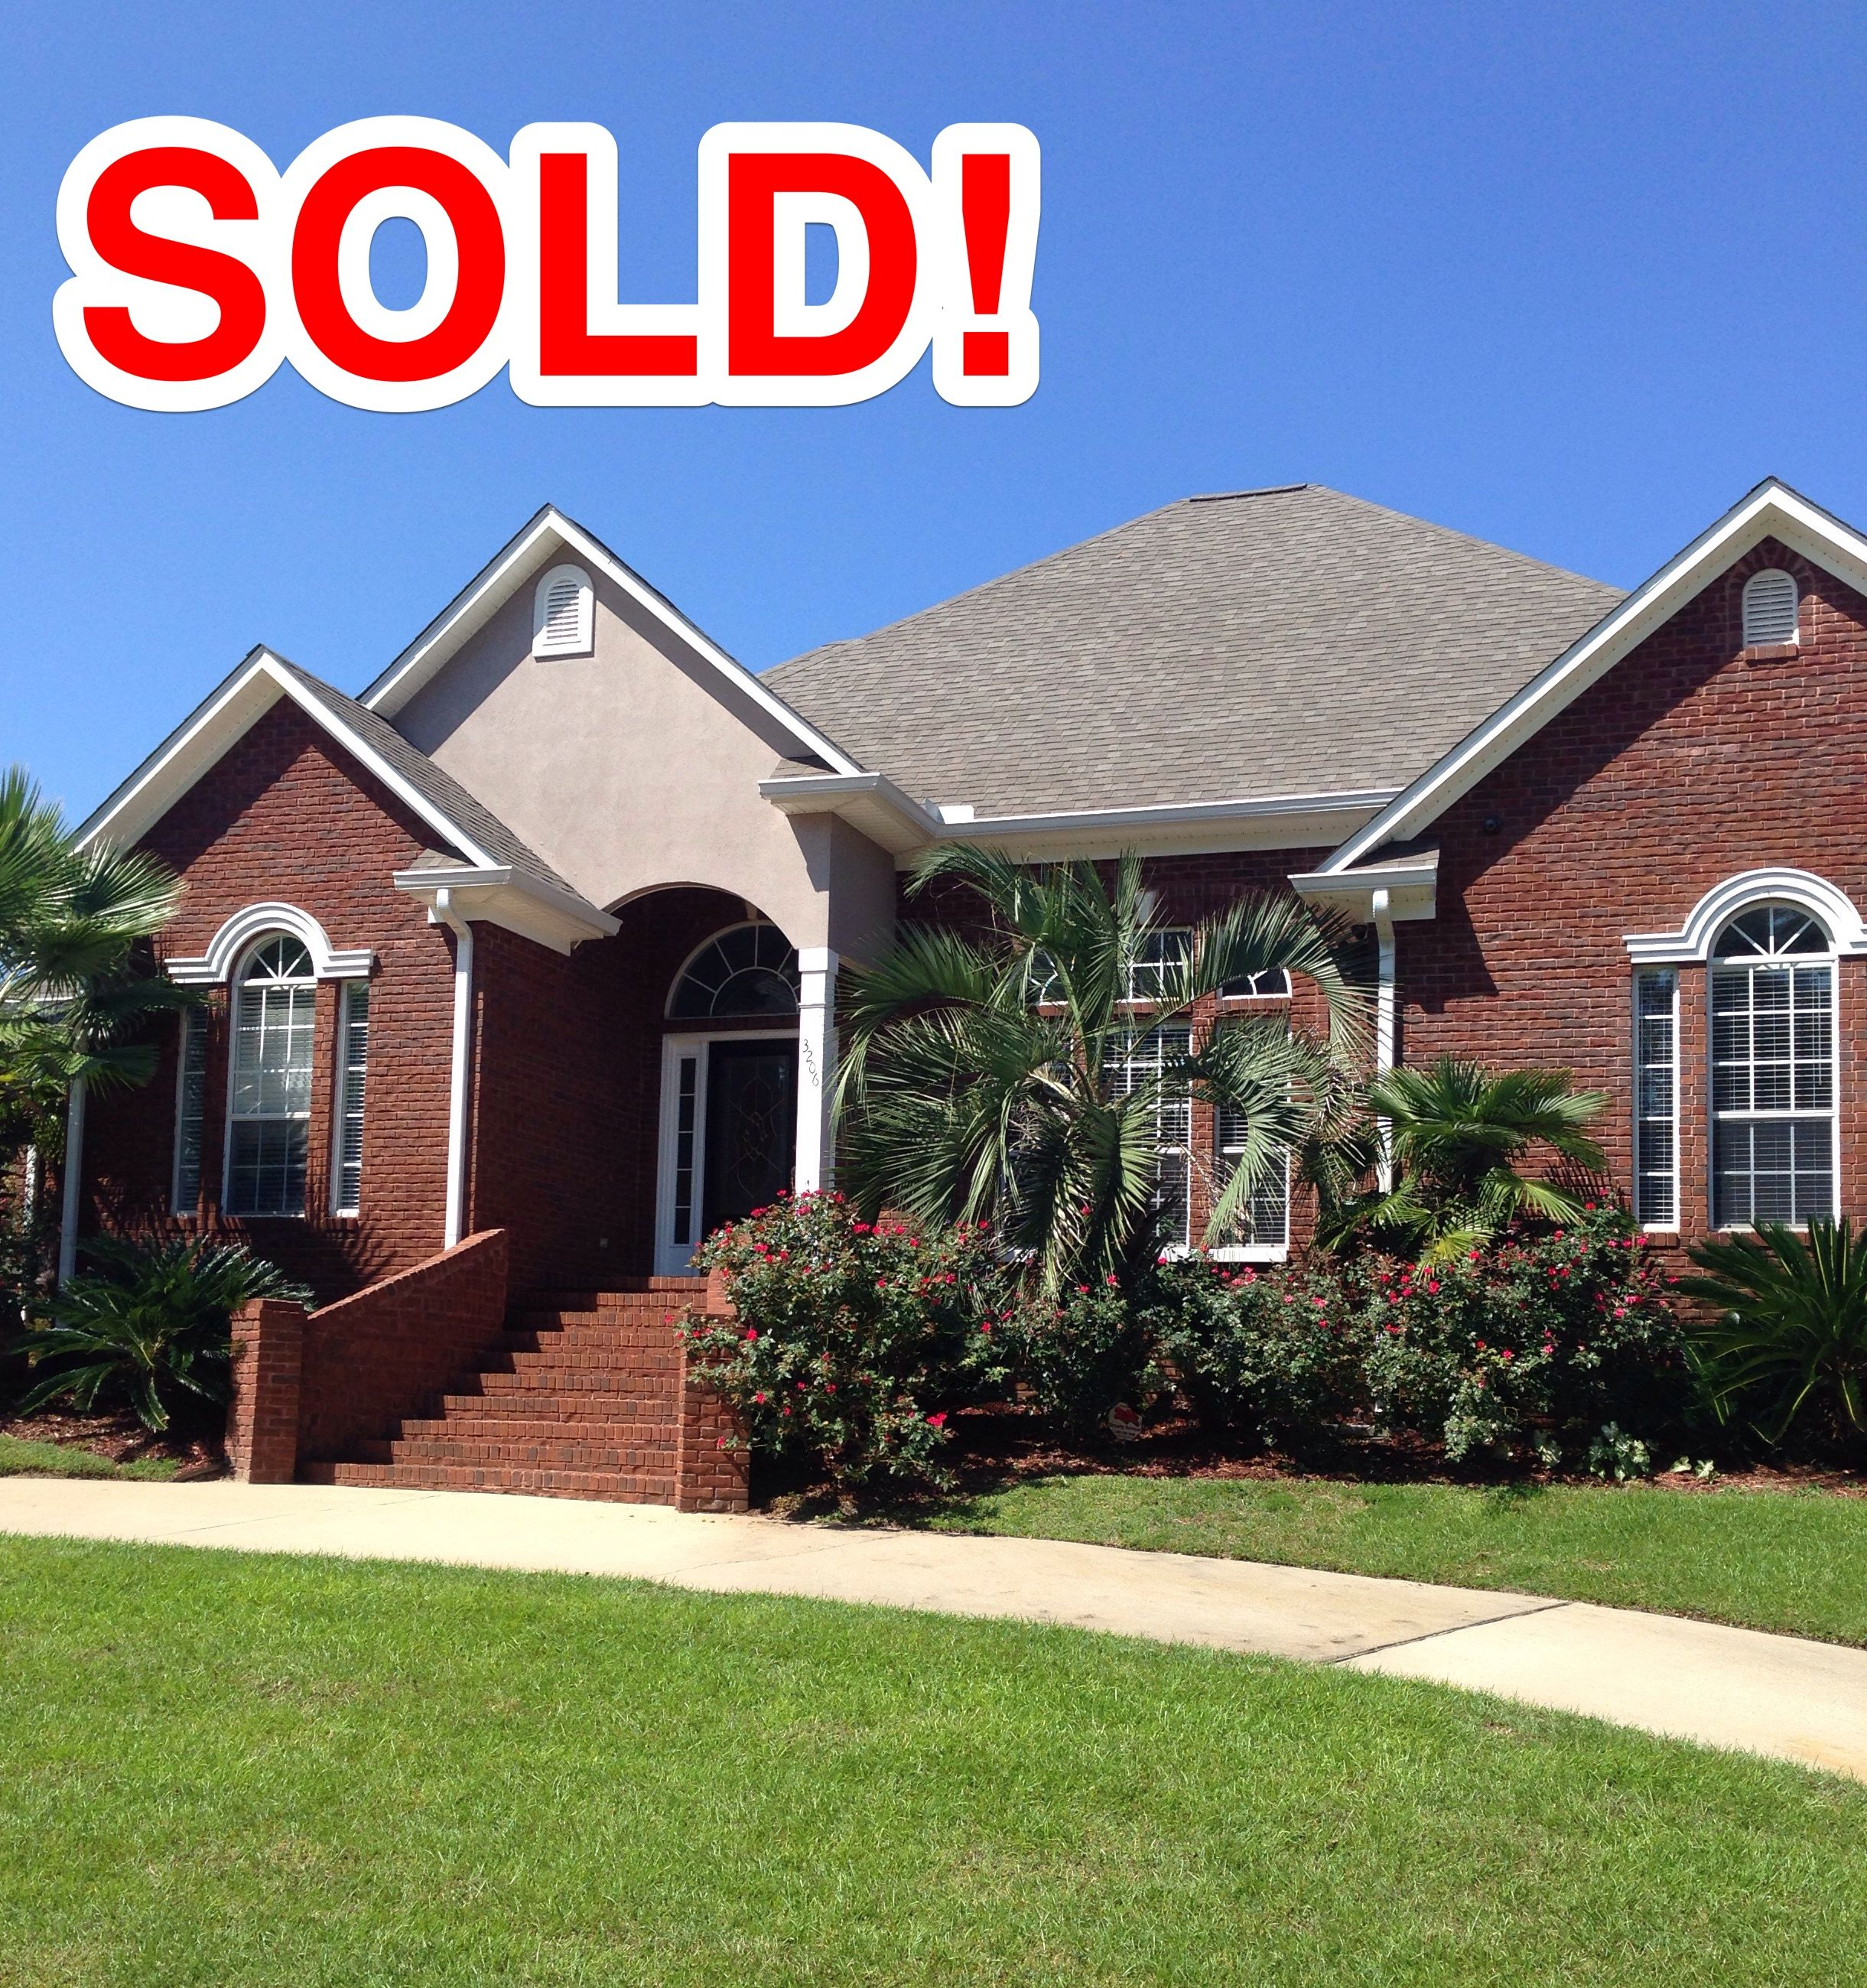 Home Sold by The Cummings Team in Wynnfield Subdivision